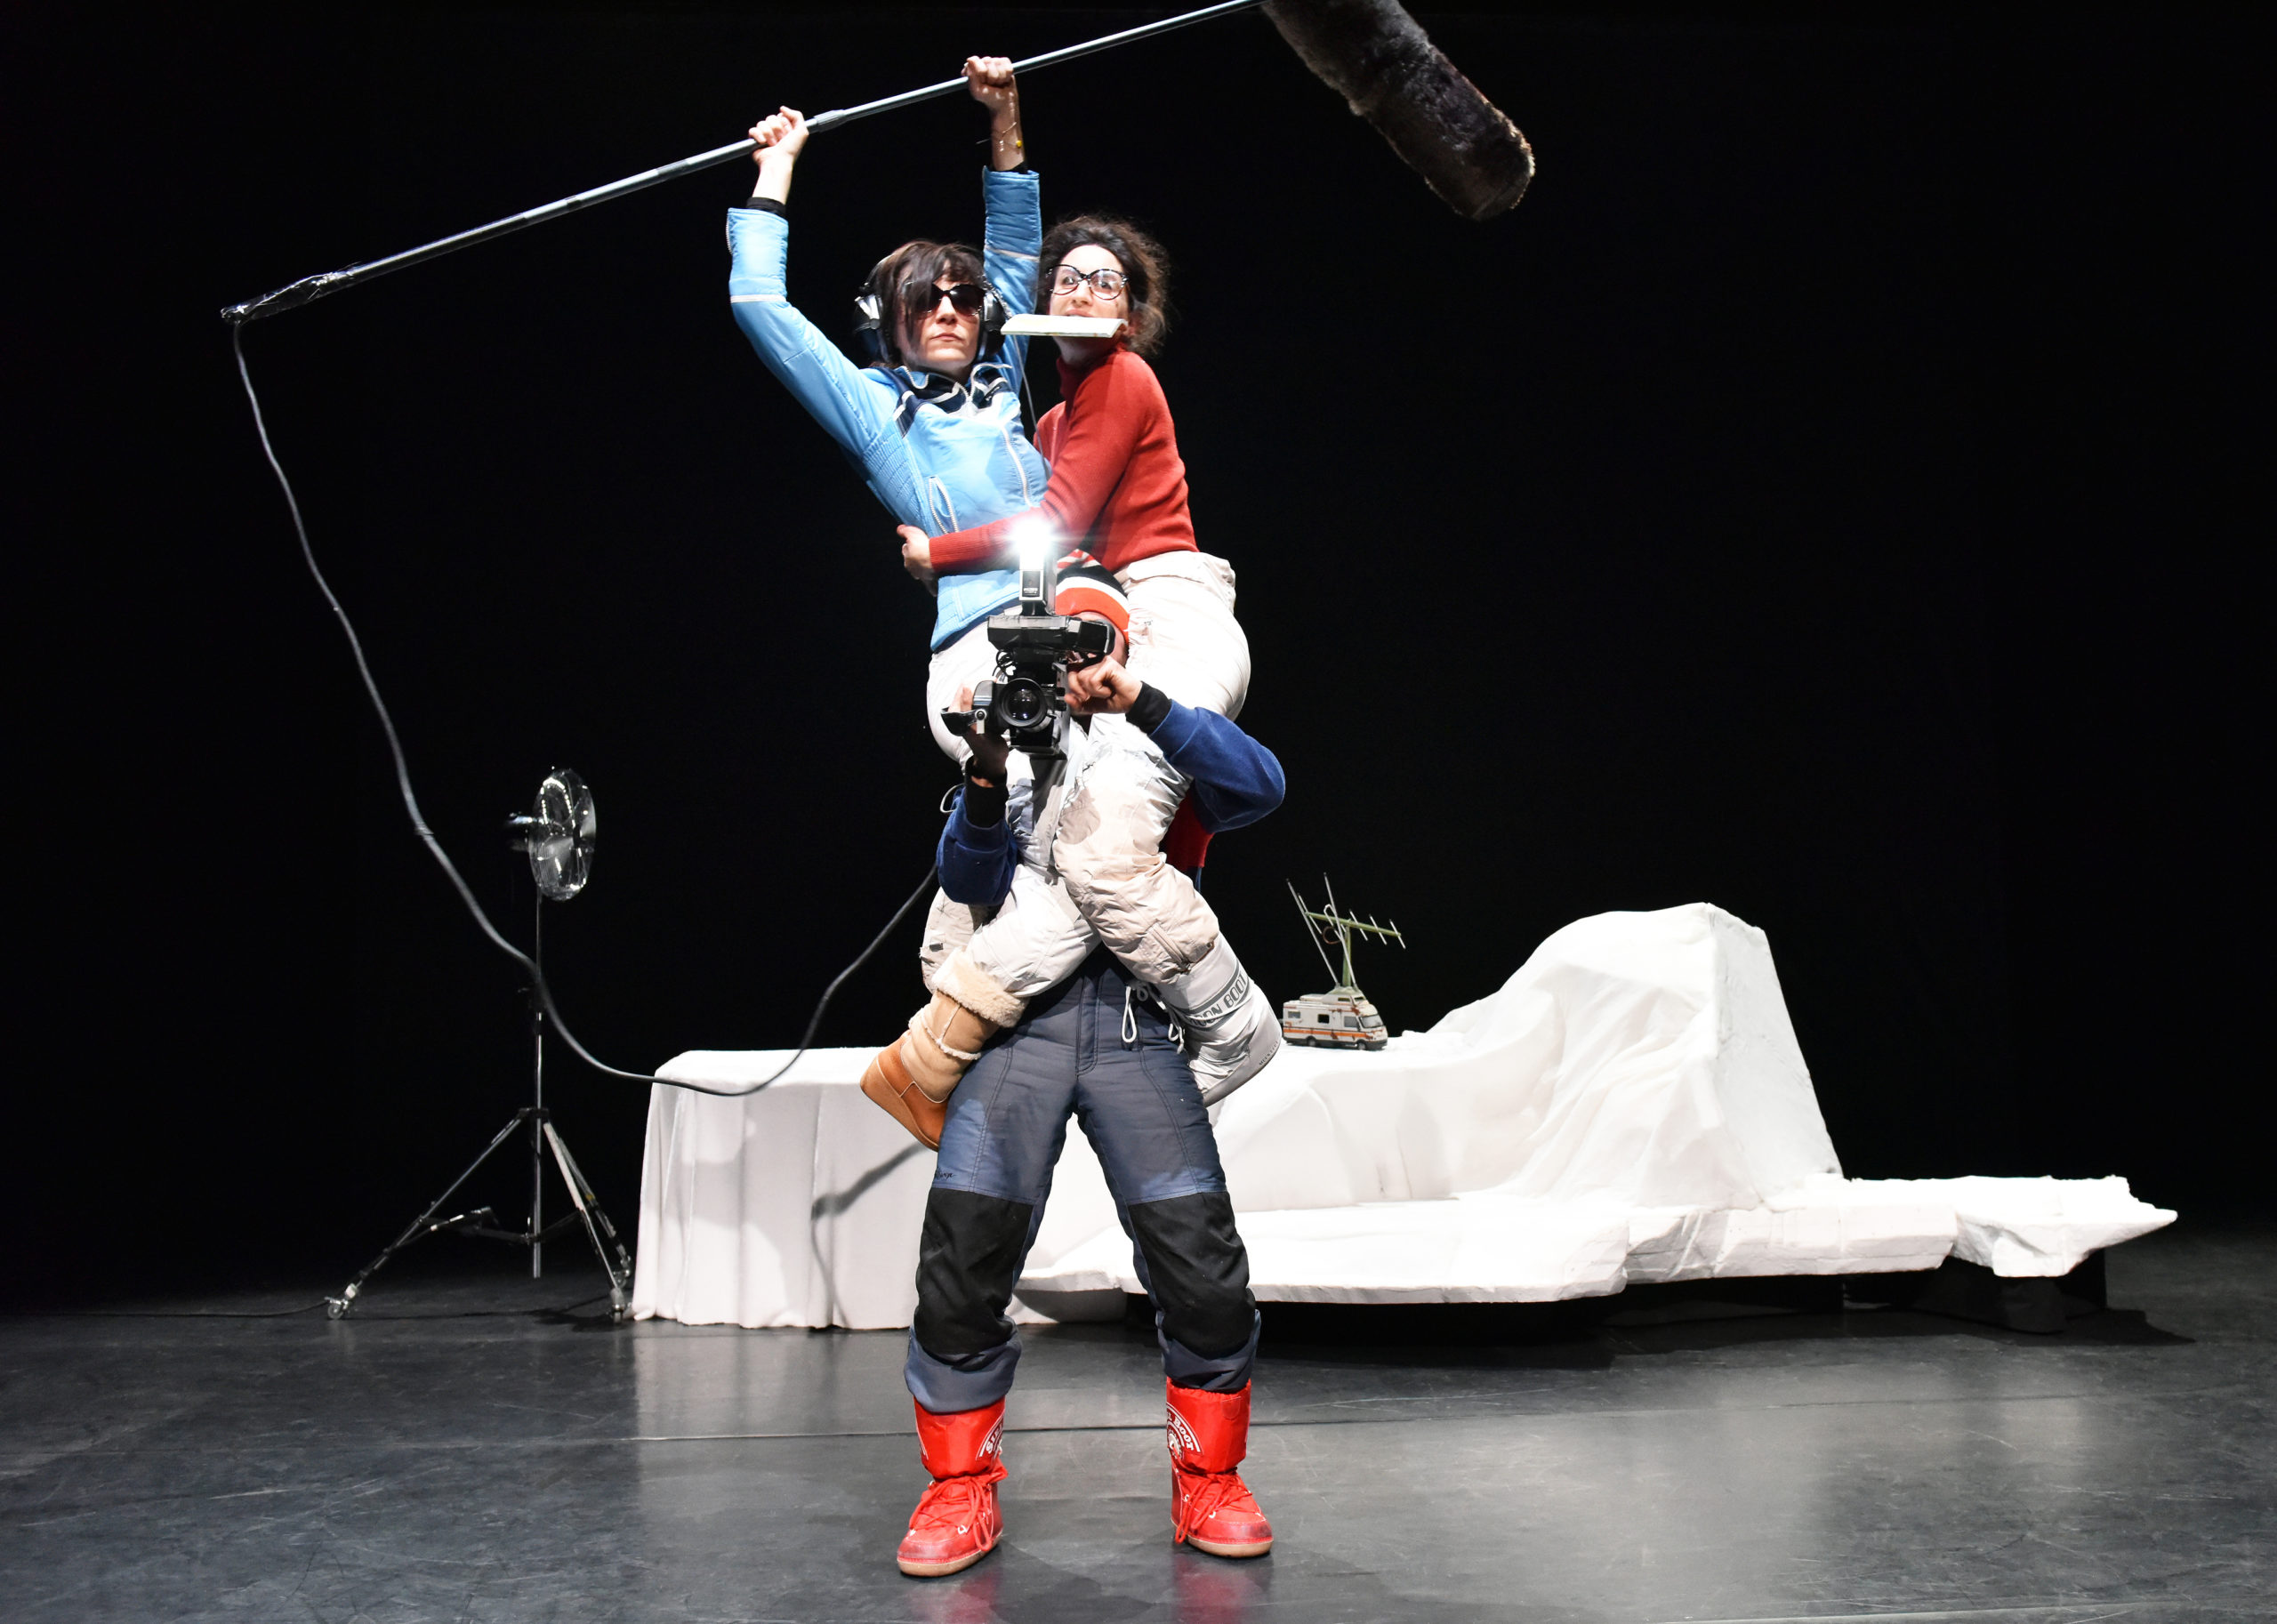 MIMOS-2021-climat-theatre-mime